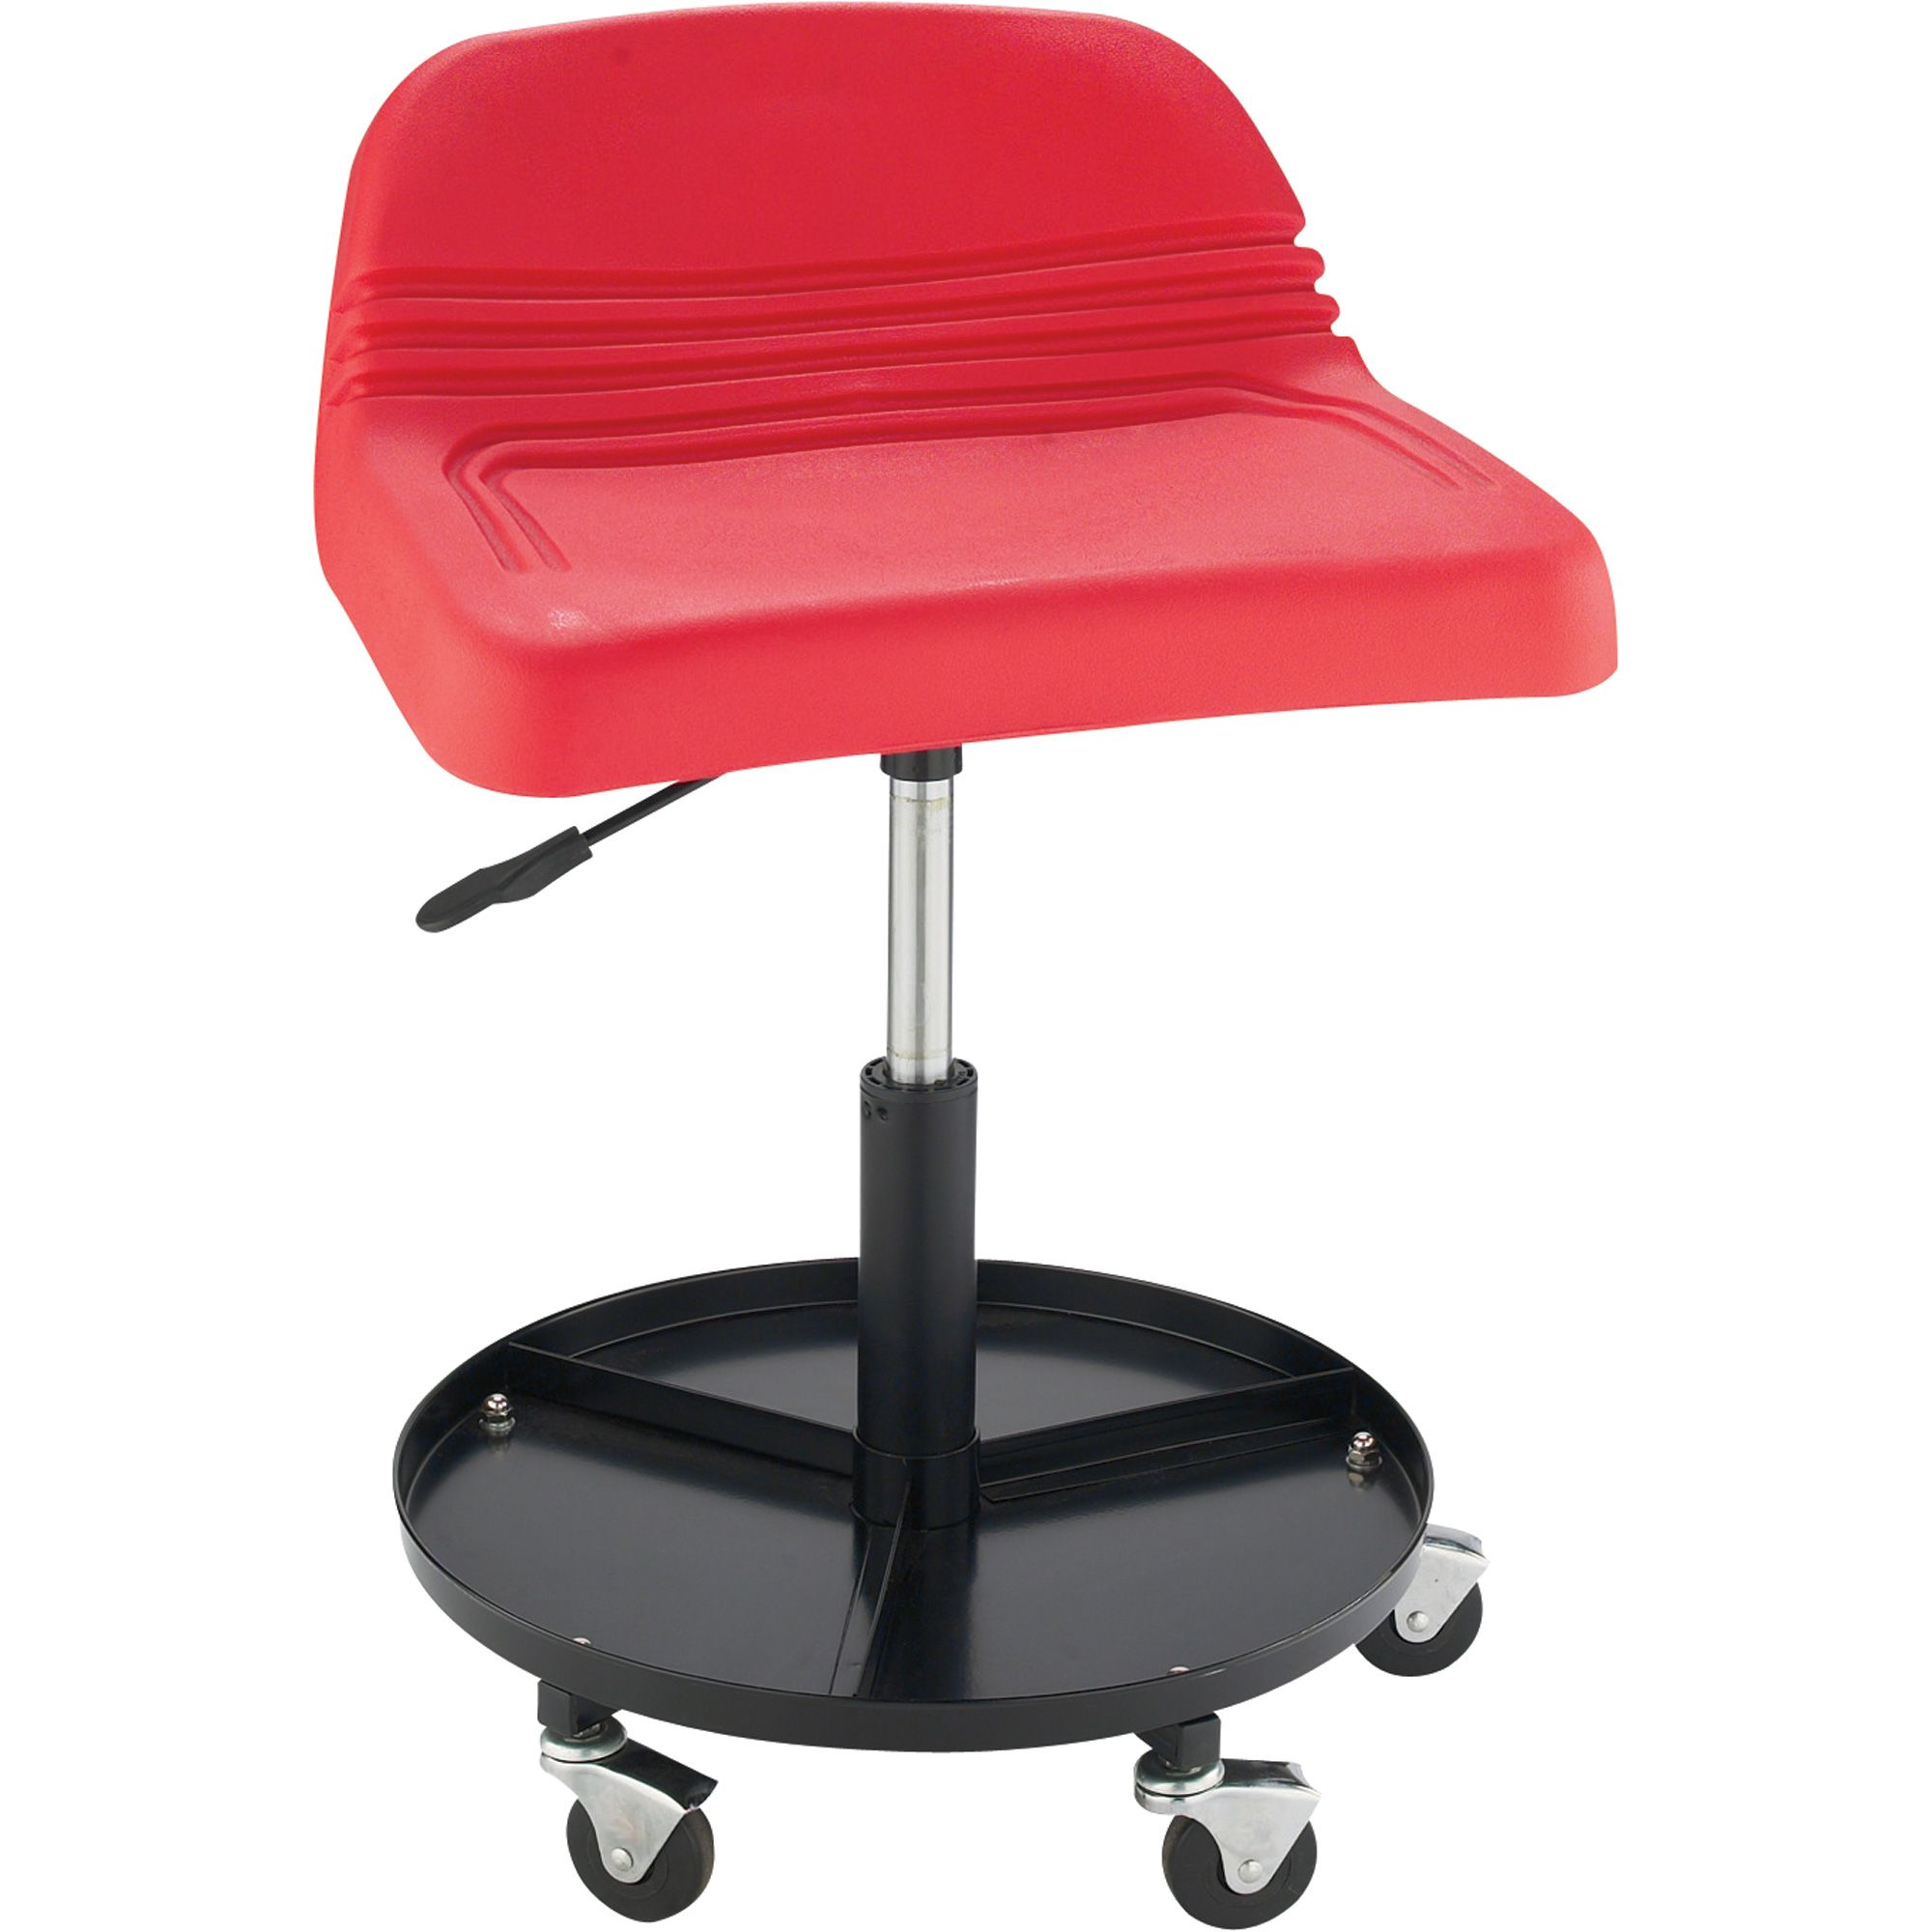 rolling chair accessories in chennai whole body massage torin big red pneumatic creeper mechanic 39s roller seat 250